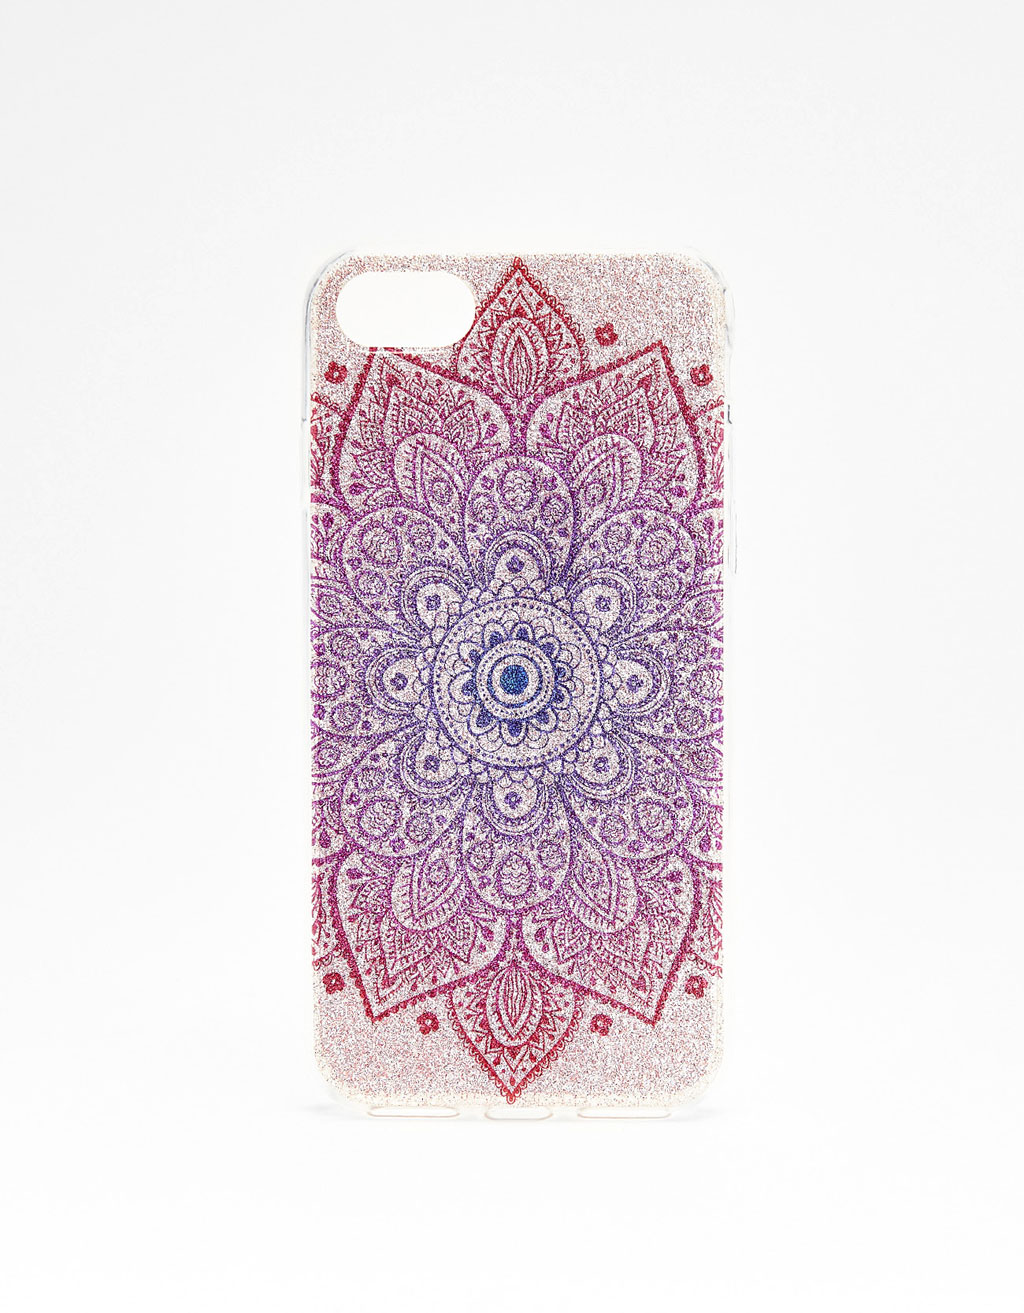 iPhone 7 case with glitter and raised pattern